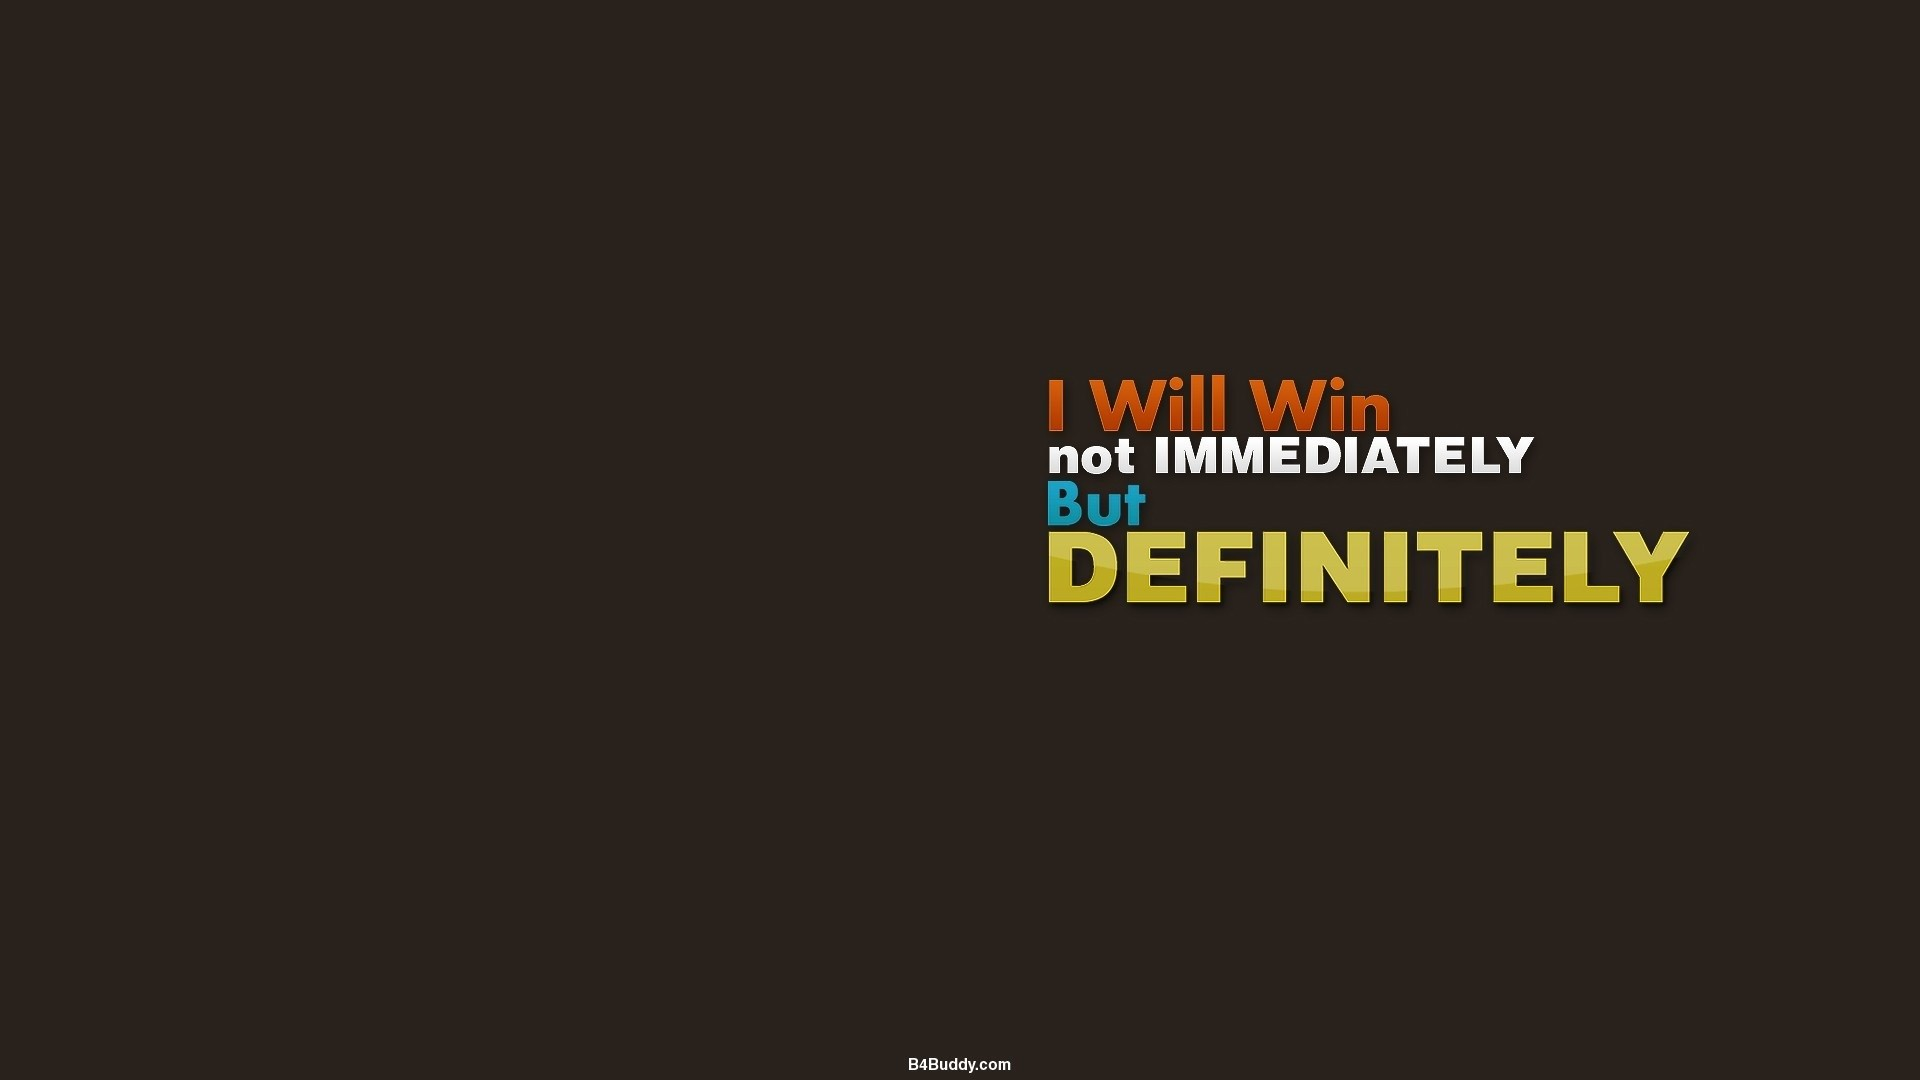 Motivational Quote Wallpaper Desktop Pc And Mac Wallpaper - Emergency Assembly Area Sign - HD Wallpaper